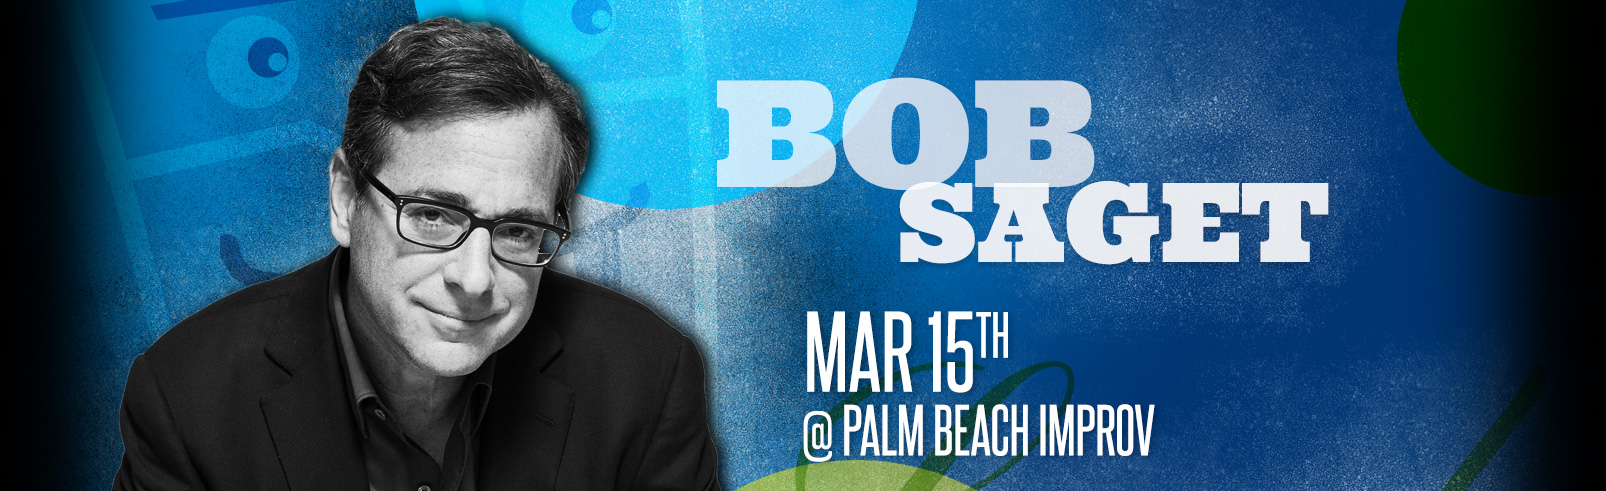 Bob Saget @ Palm Beach Improv